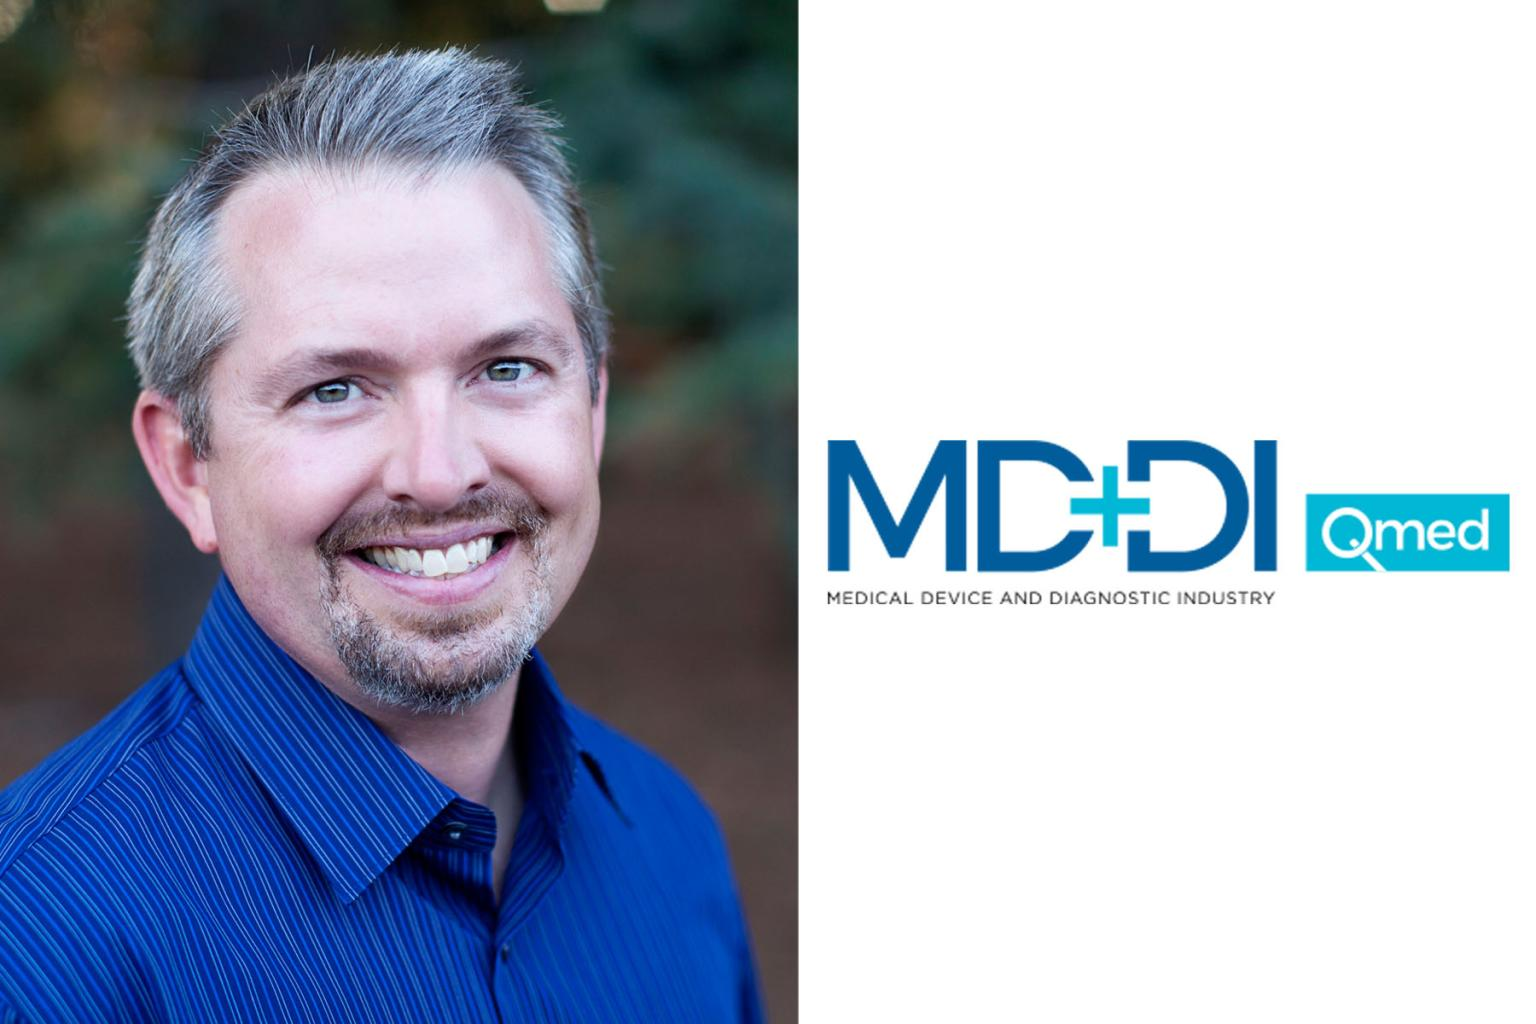 Aaron Swanson, about Remaining Competitive in the Medtech Industry